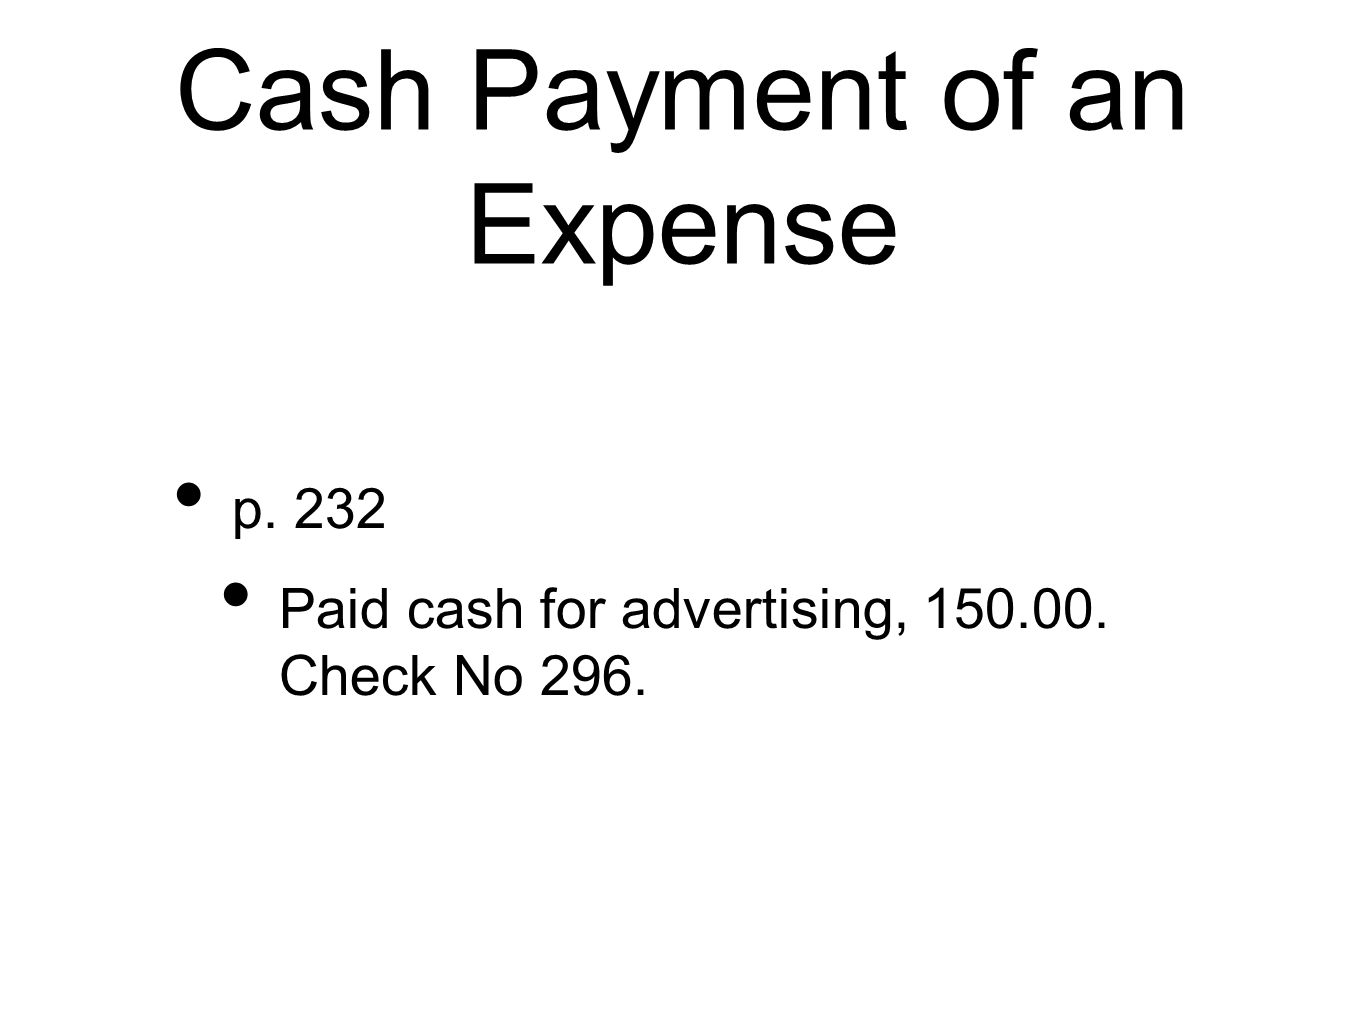 Cash Payment of an Expense